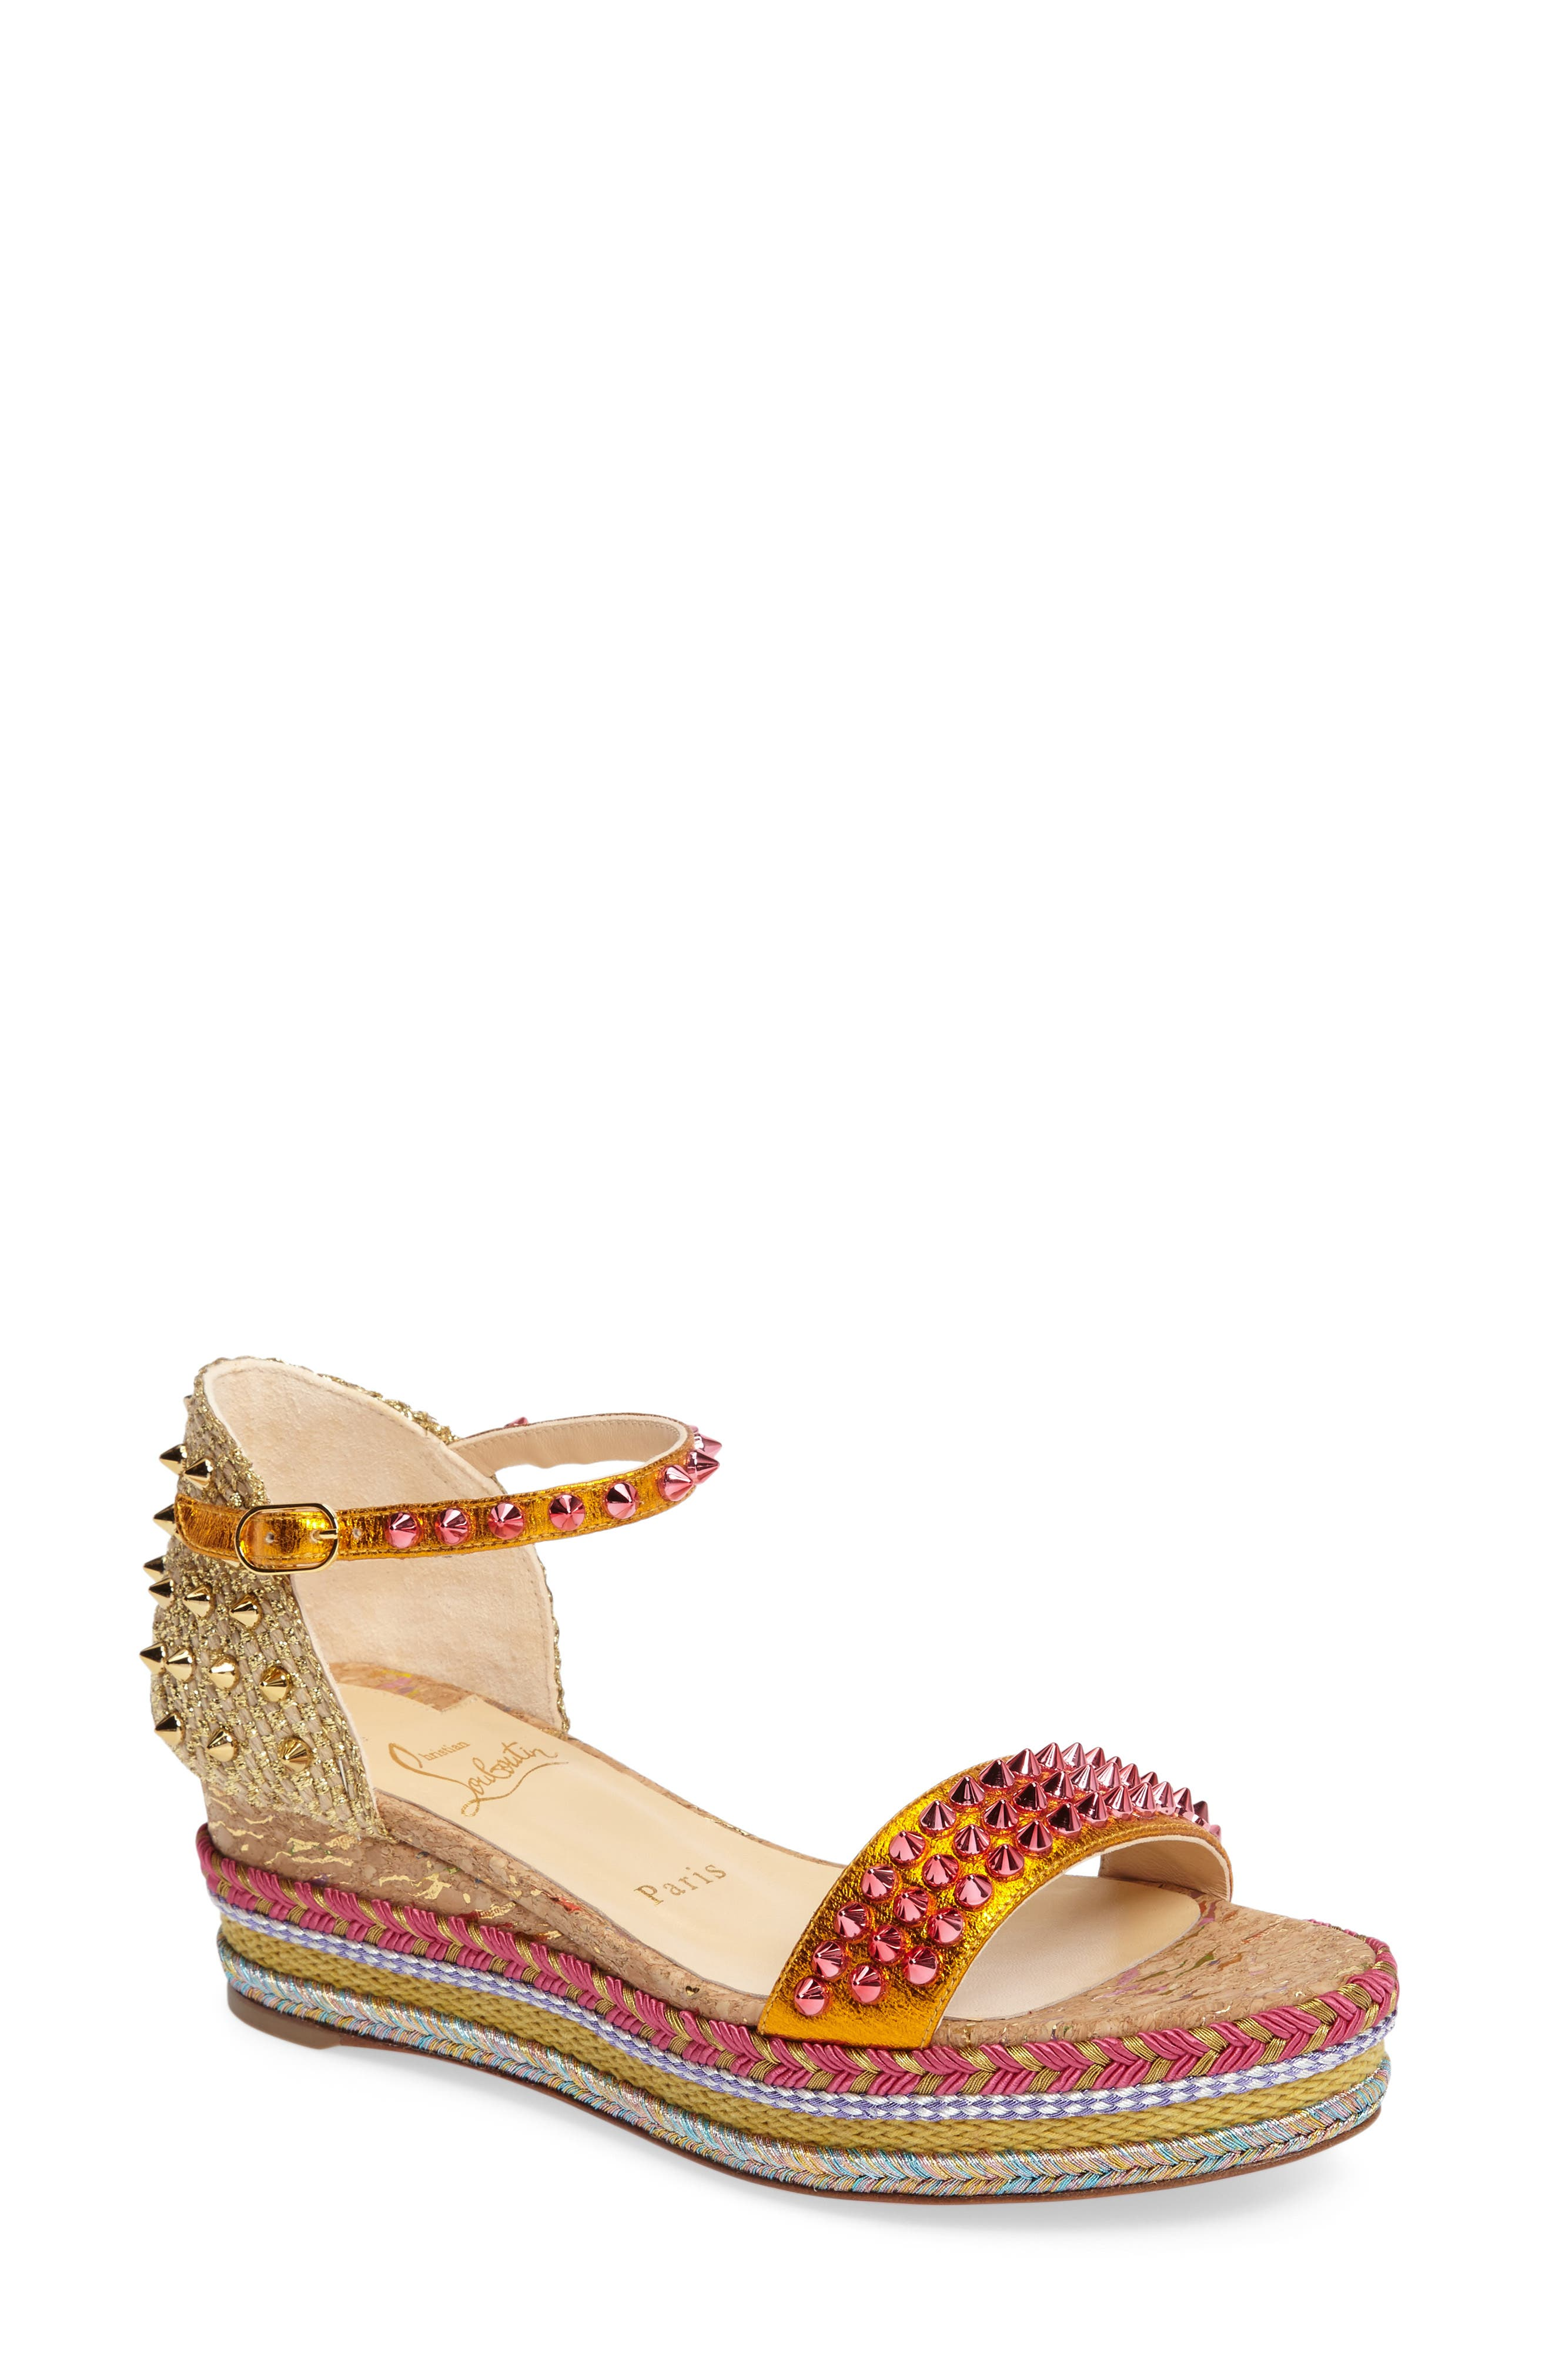 Madmonica Espadrille Platform Sandal,                             Main thumbnail 1, color,                             Orange Multi Leather